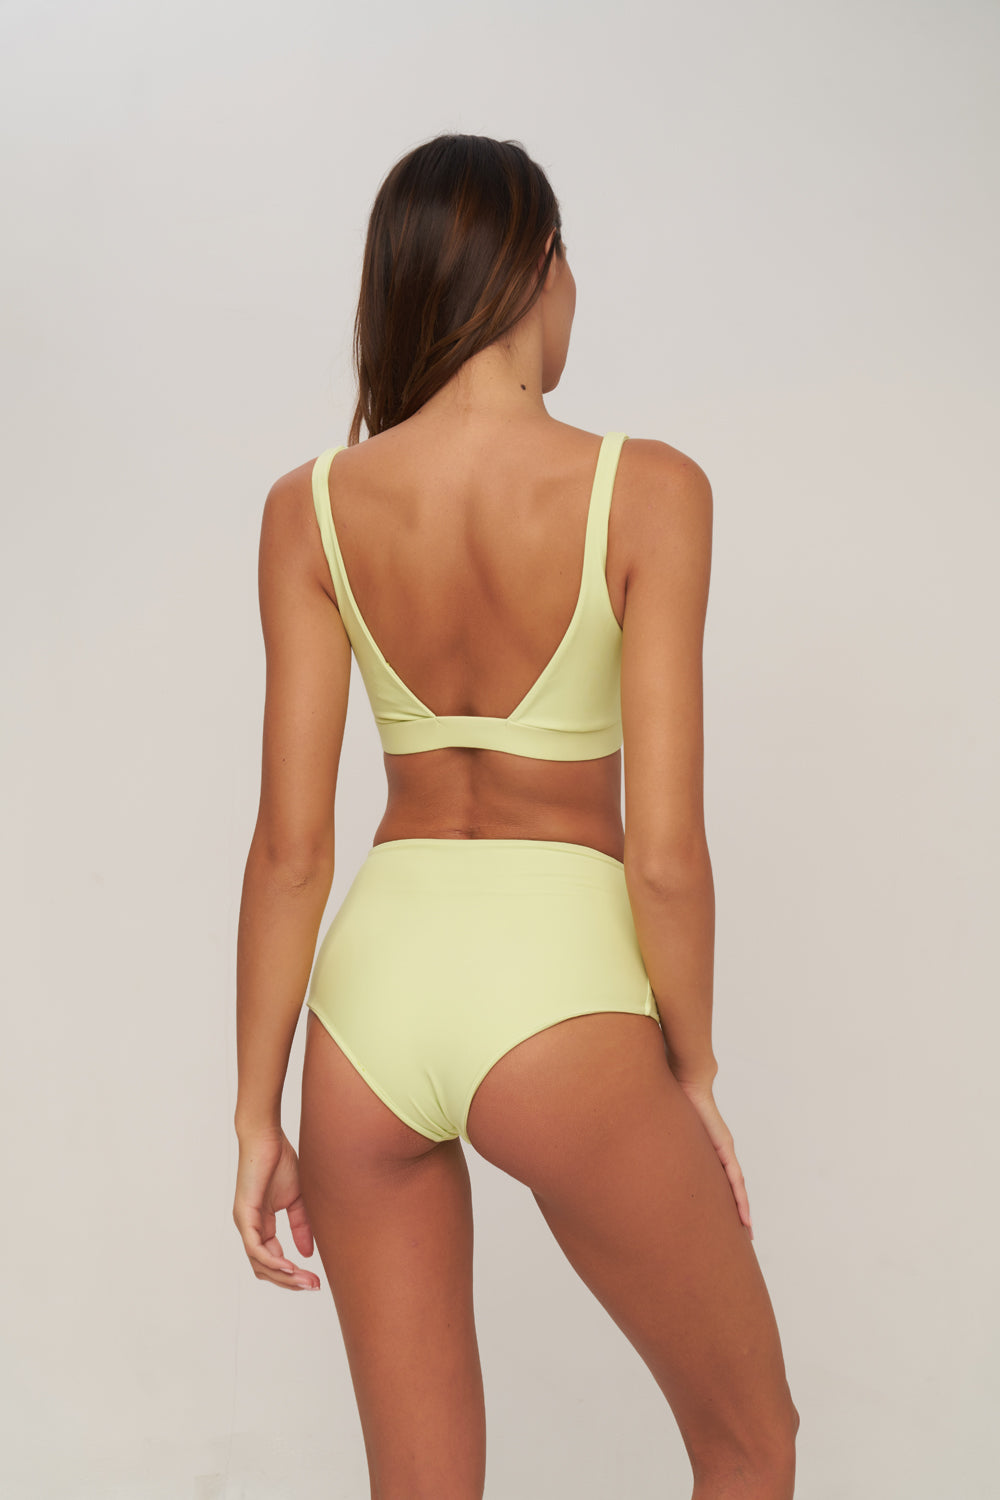 Storm Swimwear - Cannes - High Waist Bikini Bottom in Melon